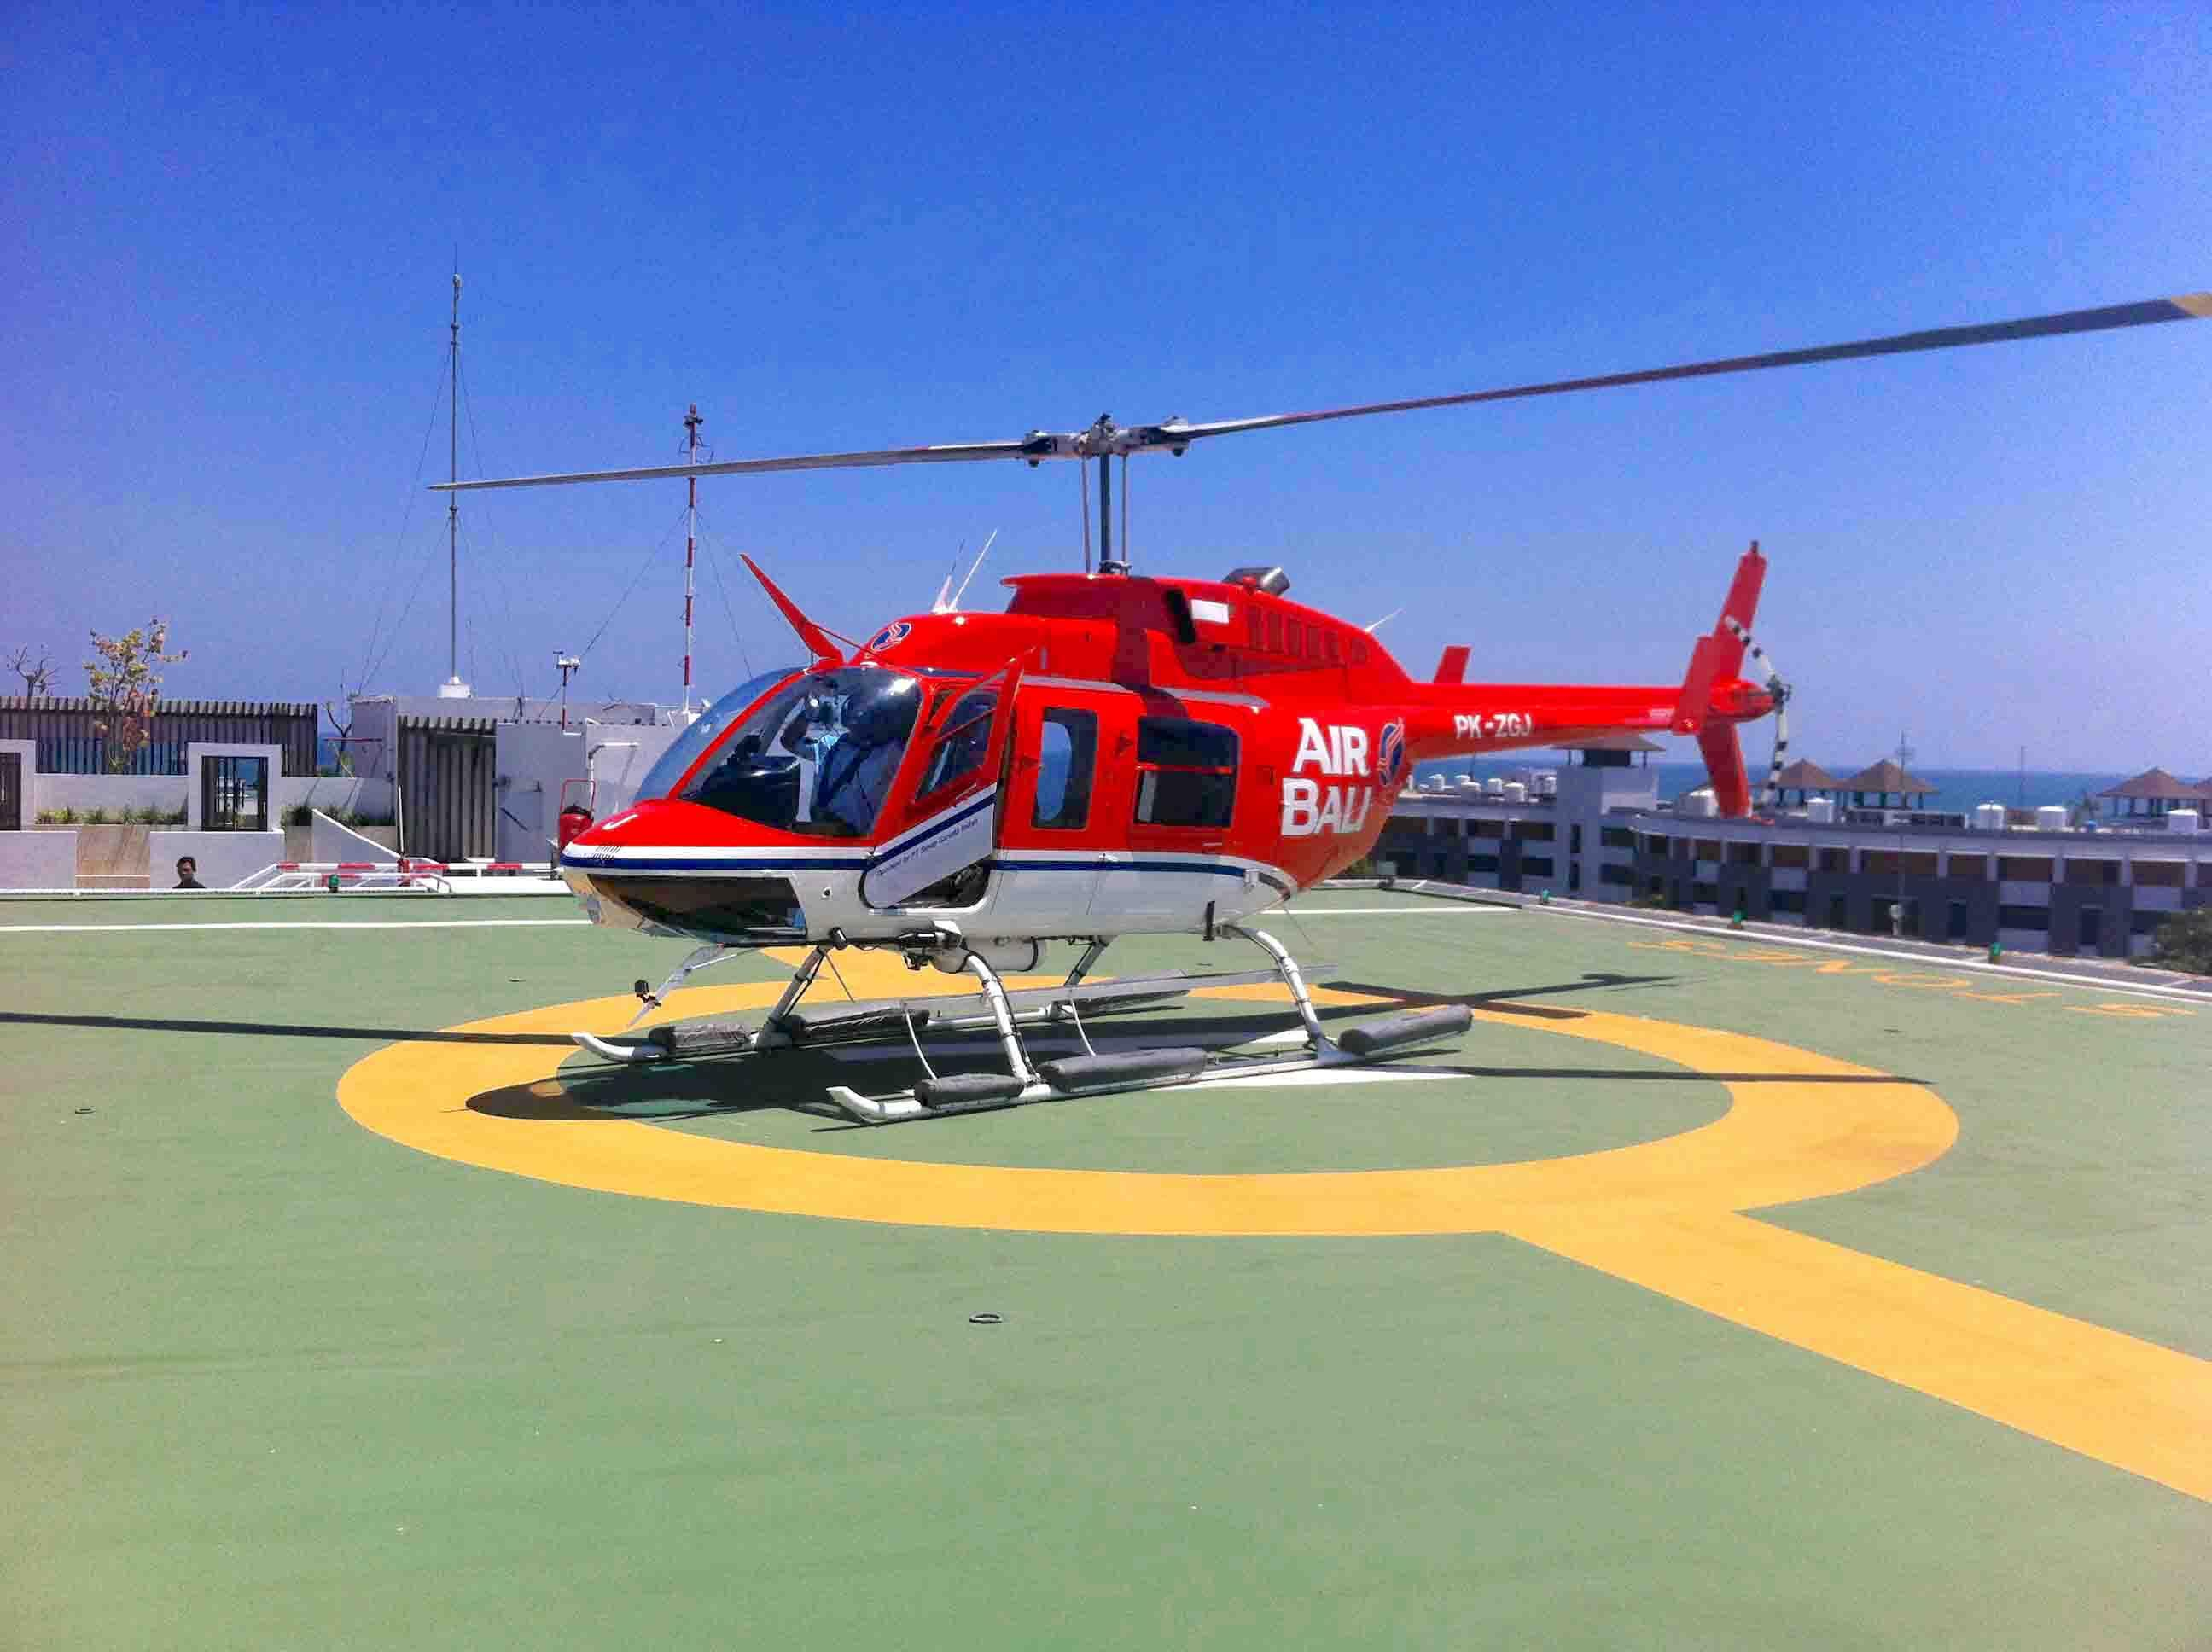 Air Bali Helicopter Sky Tour